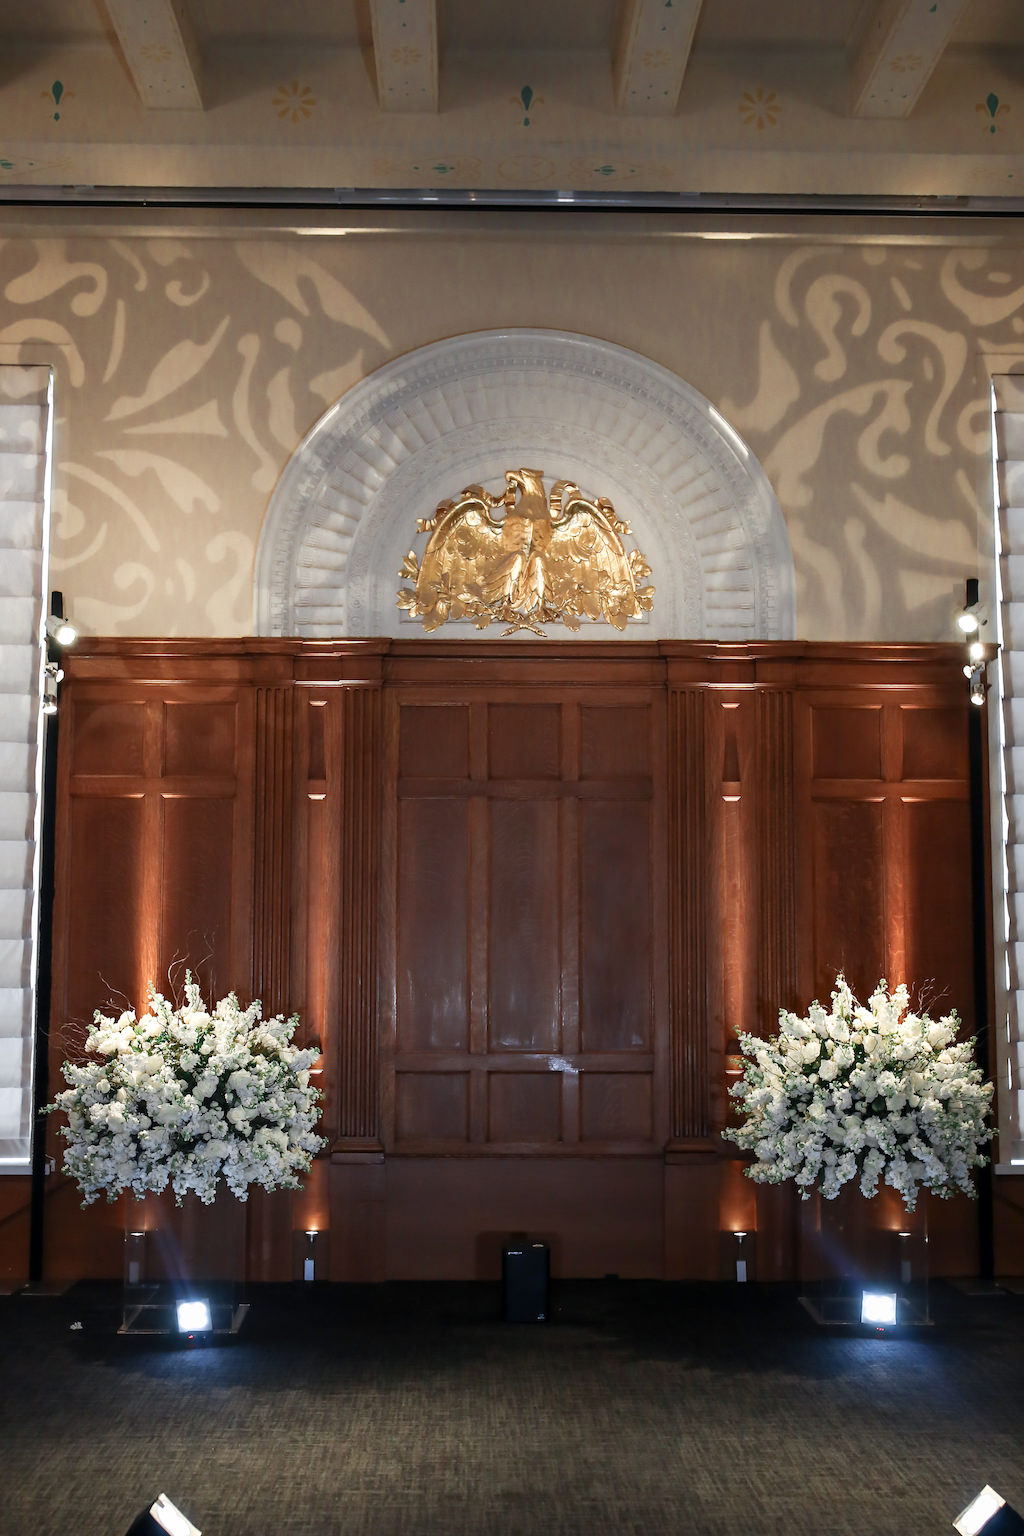 White Floral Bouquets on Clear Acrylic Stands   Historic Downtown Tampa Wedding Venue Le Meridien   Marry Me Tampa Bay and Isabel O'Neil Bridal Fashion Runway Show 2018   Tampa Wedding Photographer Lifelong Photography Studios